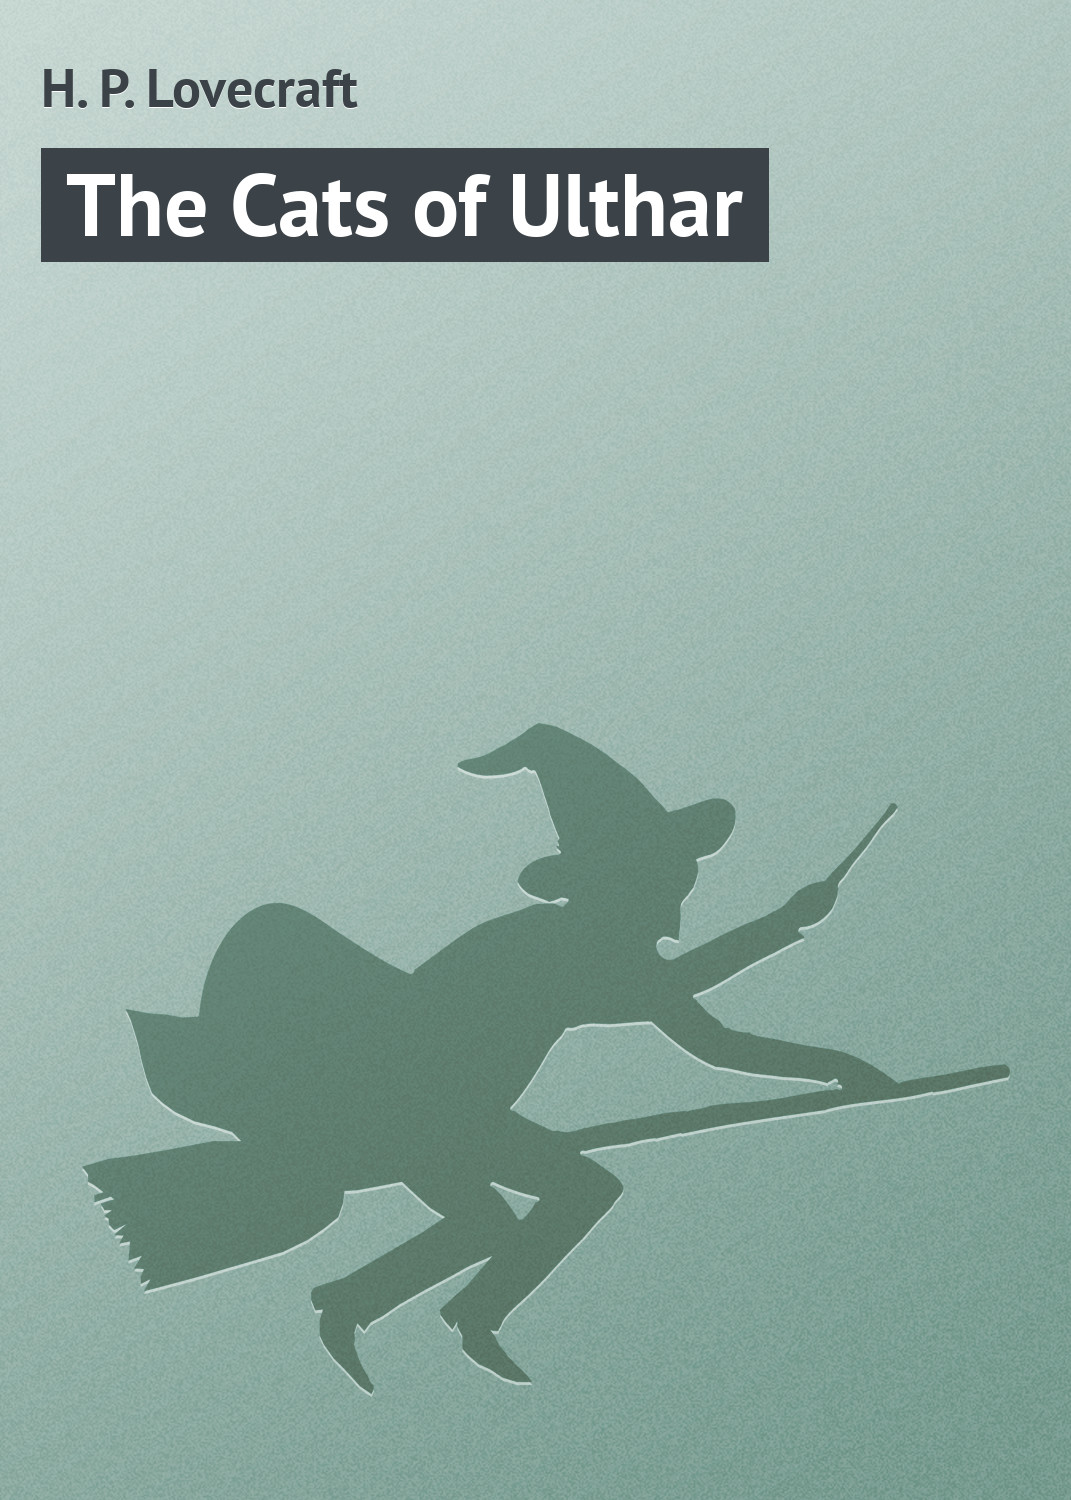 все цены на Howard Phillips Lovecraft The Cats of Ulthar онлайн